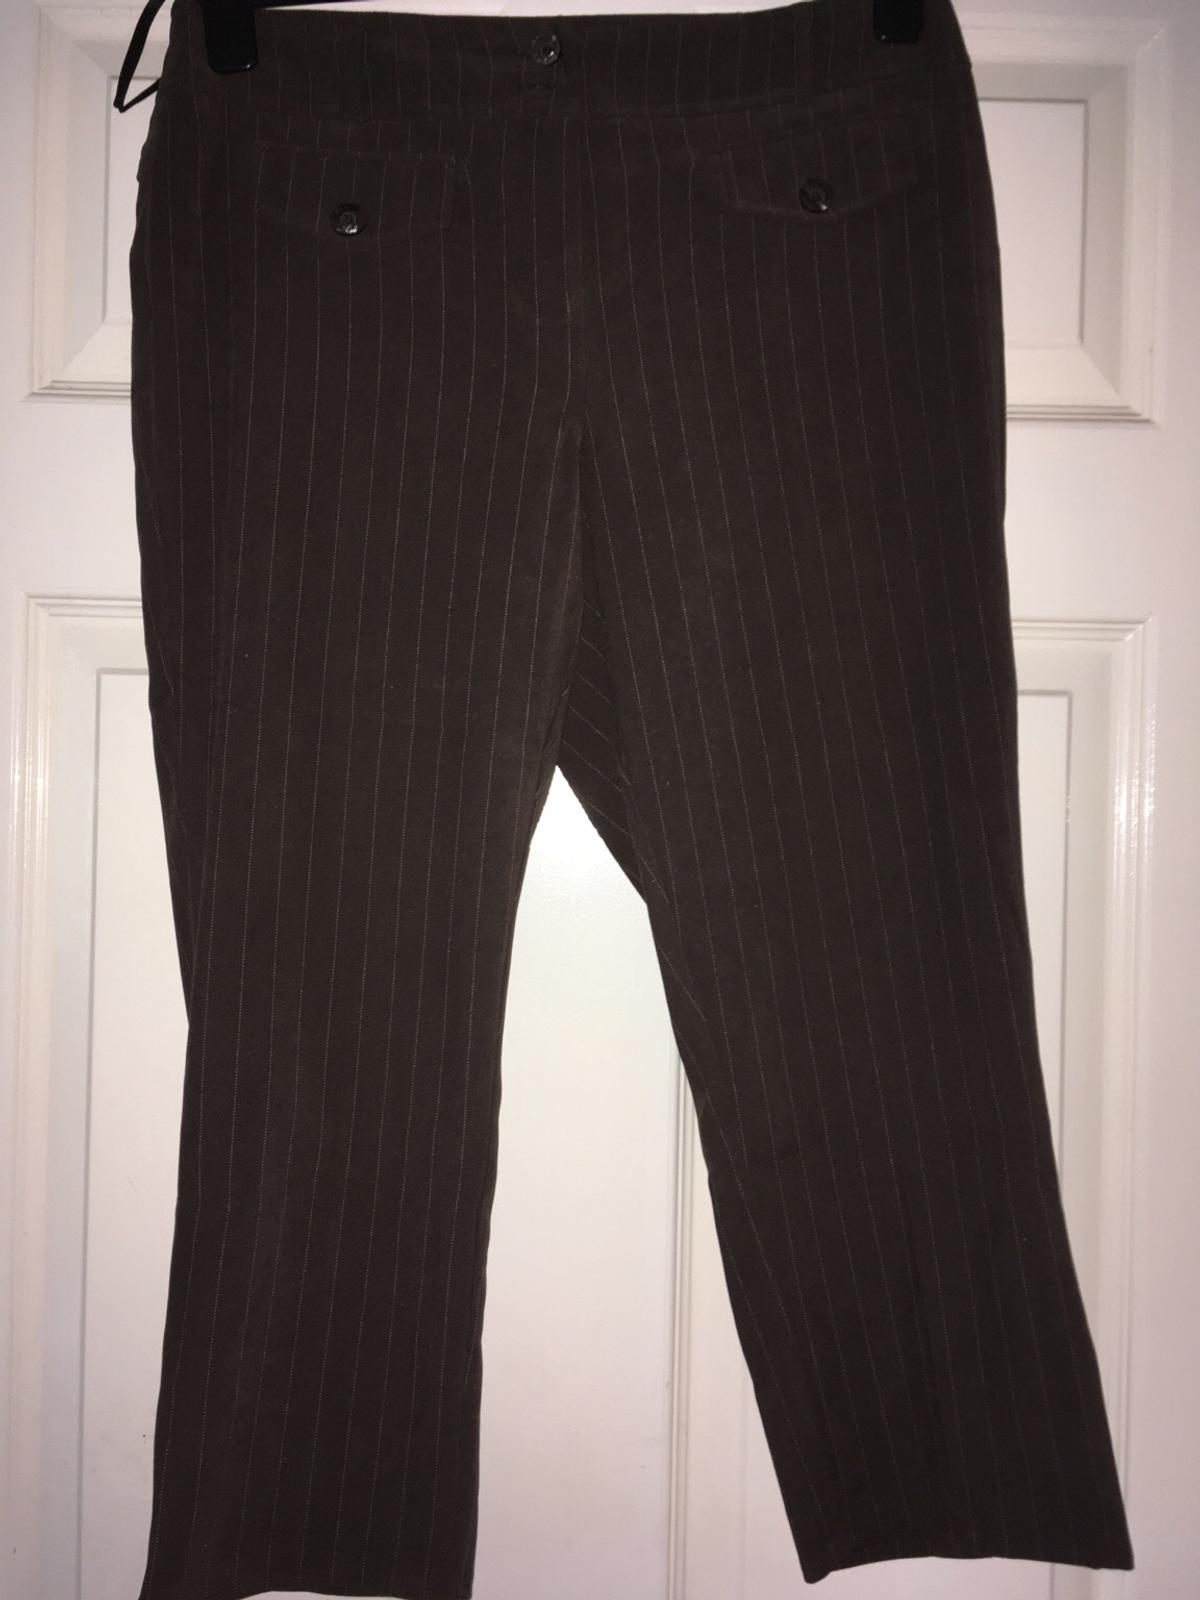 Brown stripped 3 quarter length ladies trousers for sale. Features fashion pockets to the front and button detail at the legs.